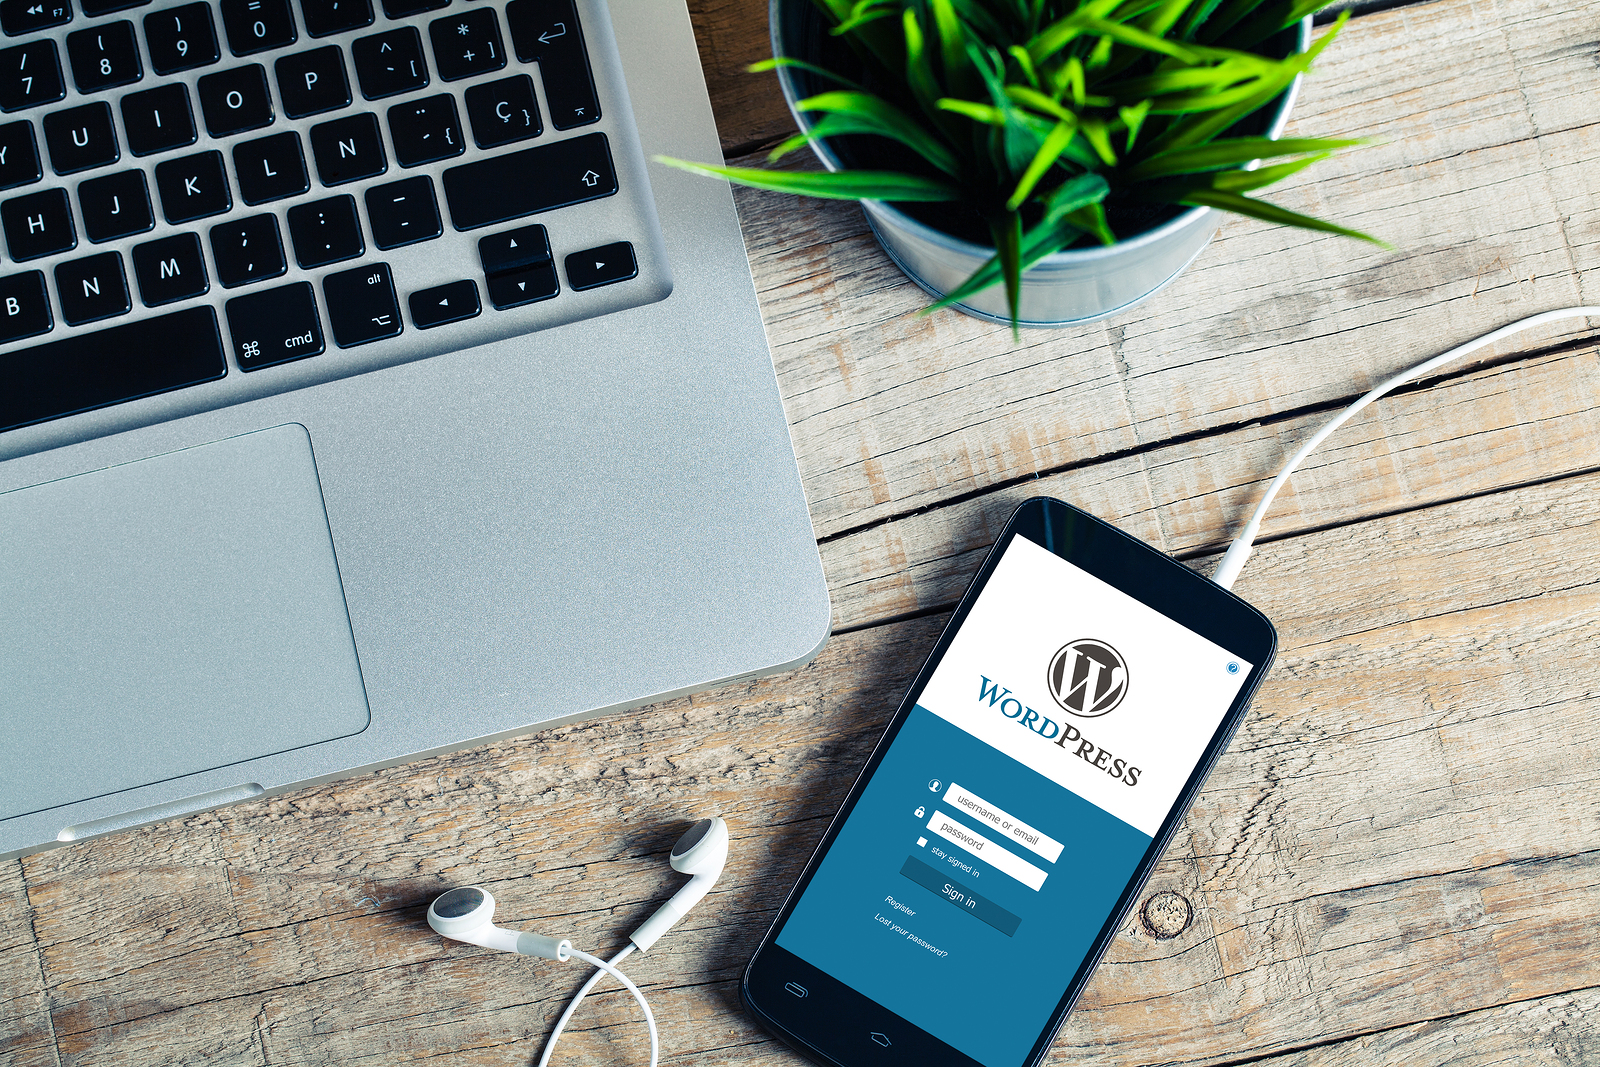 wordpress-7-little-changes-that-will-make-a-big-difference